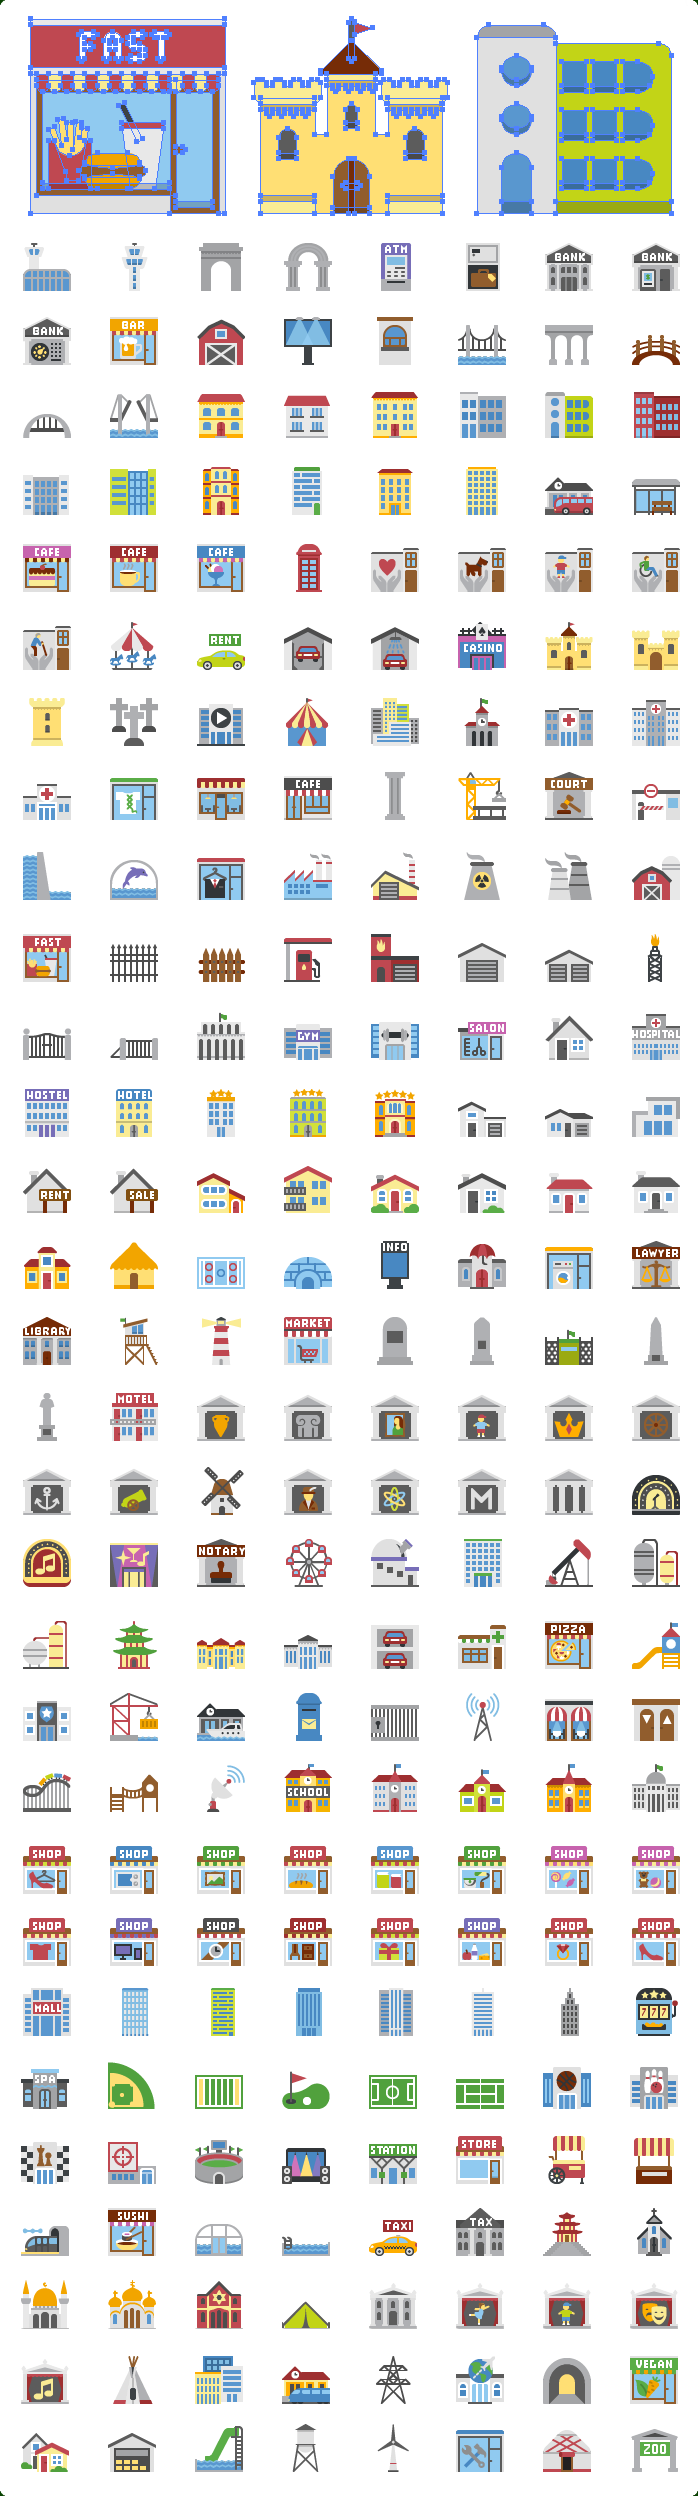 Flat Buildings SVG Icons